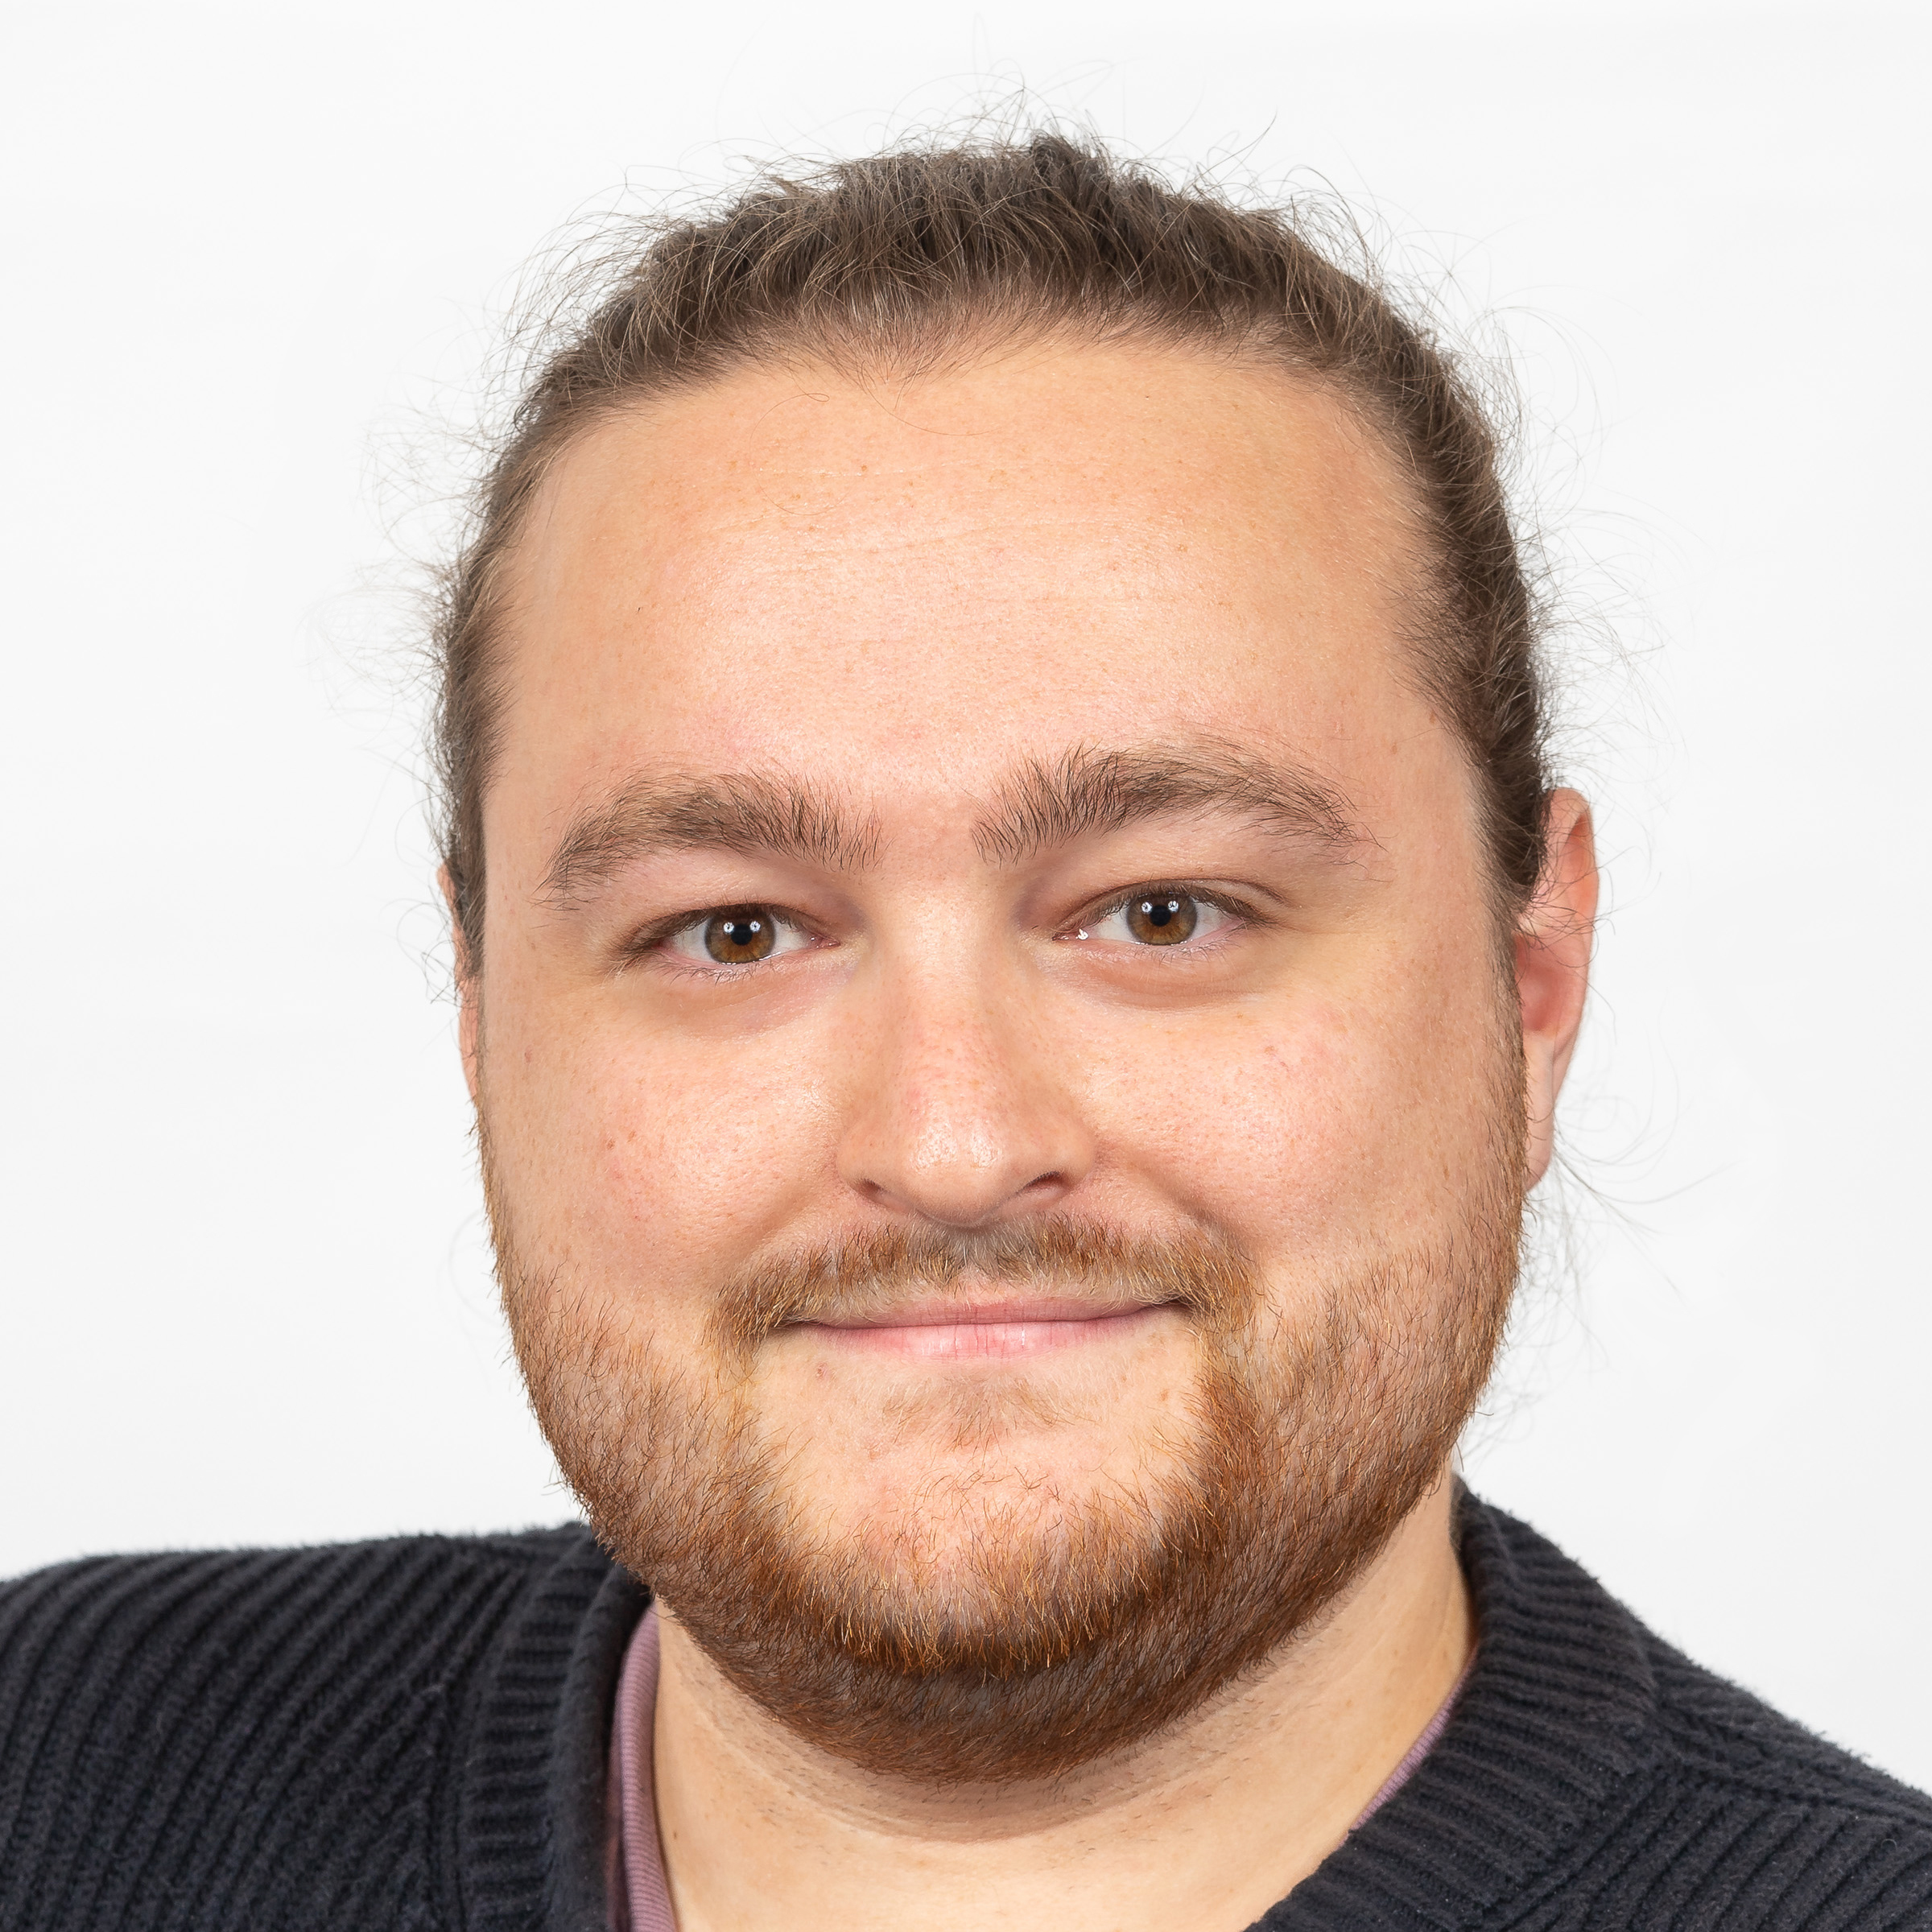 ALEX DAWES,  LEAD ENGINEER  Alex D is a co-founder and Lead Engineer at Hivemind, designing, evolving and implementing the Hivemind platform.   READ MORE